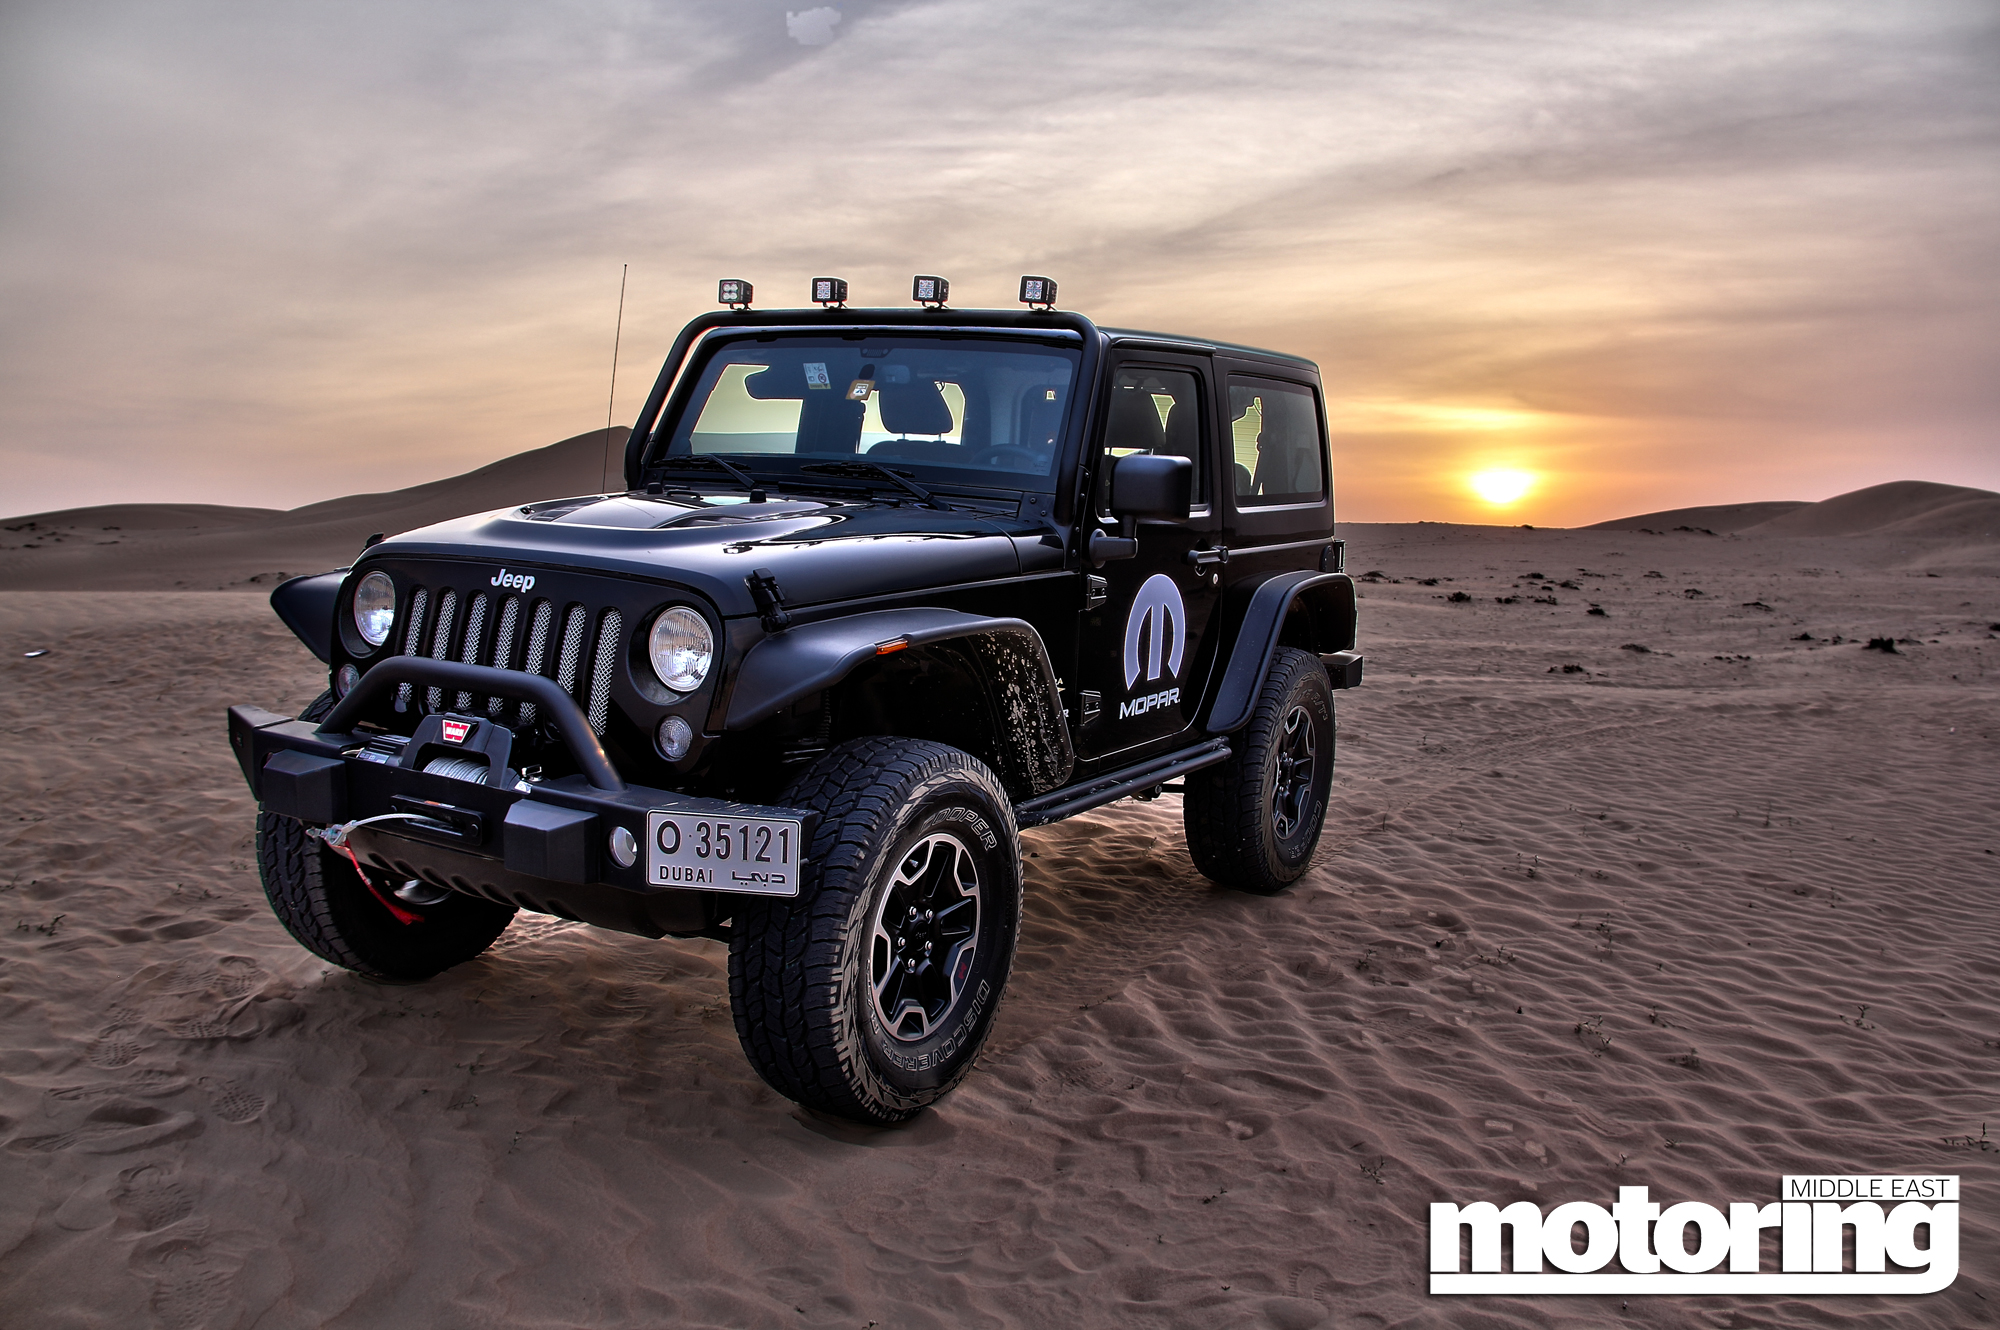 2014 Jeep Wrangler Sahara Moparized Review Motoring Middle East